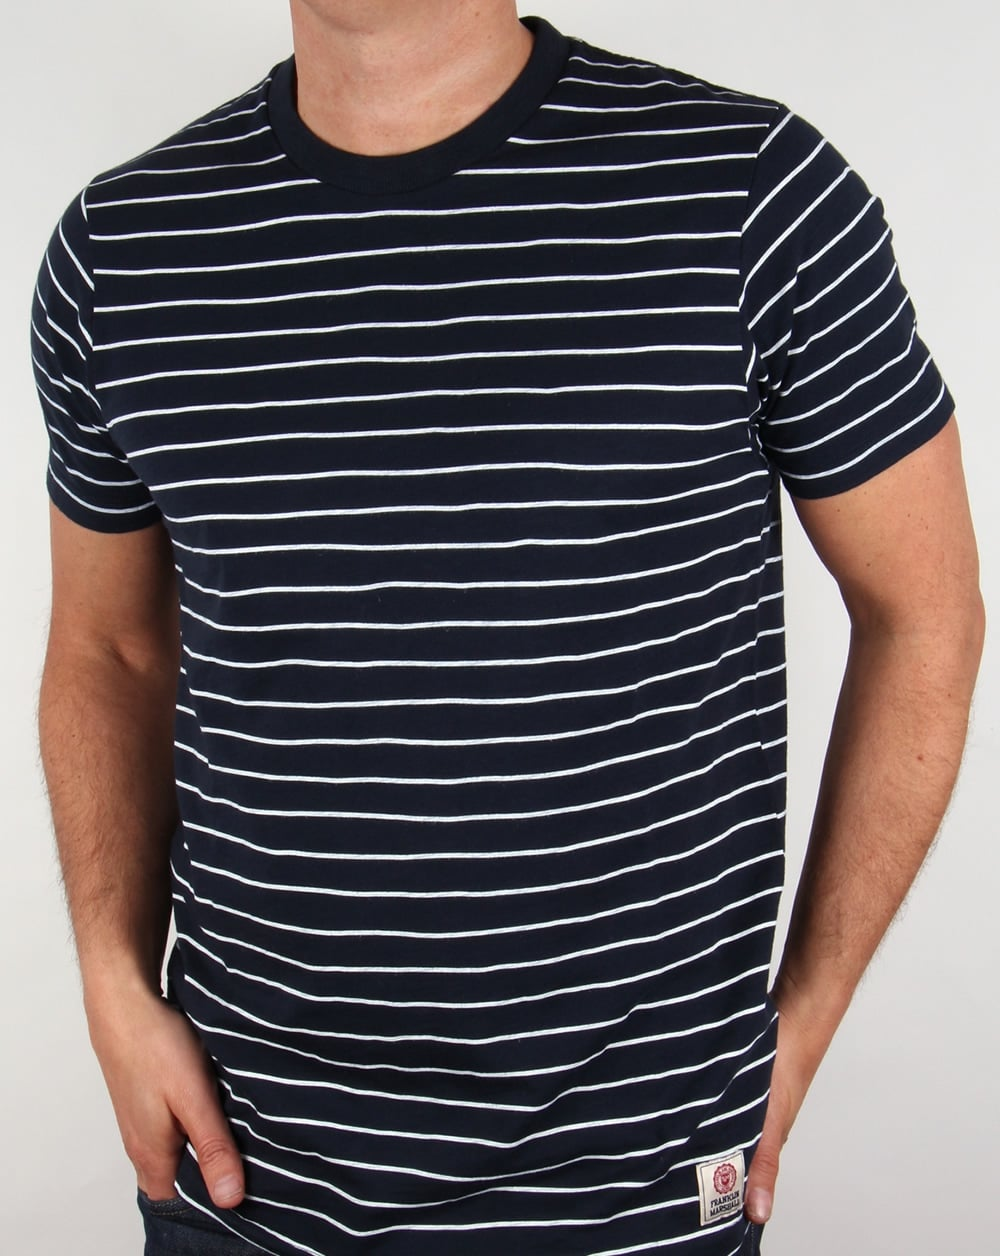 franklin and marshall striped t shirt navy white mens tee